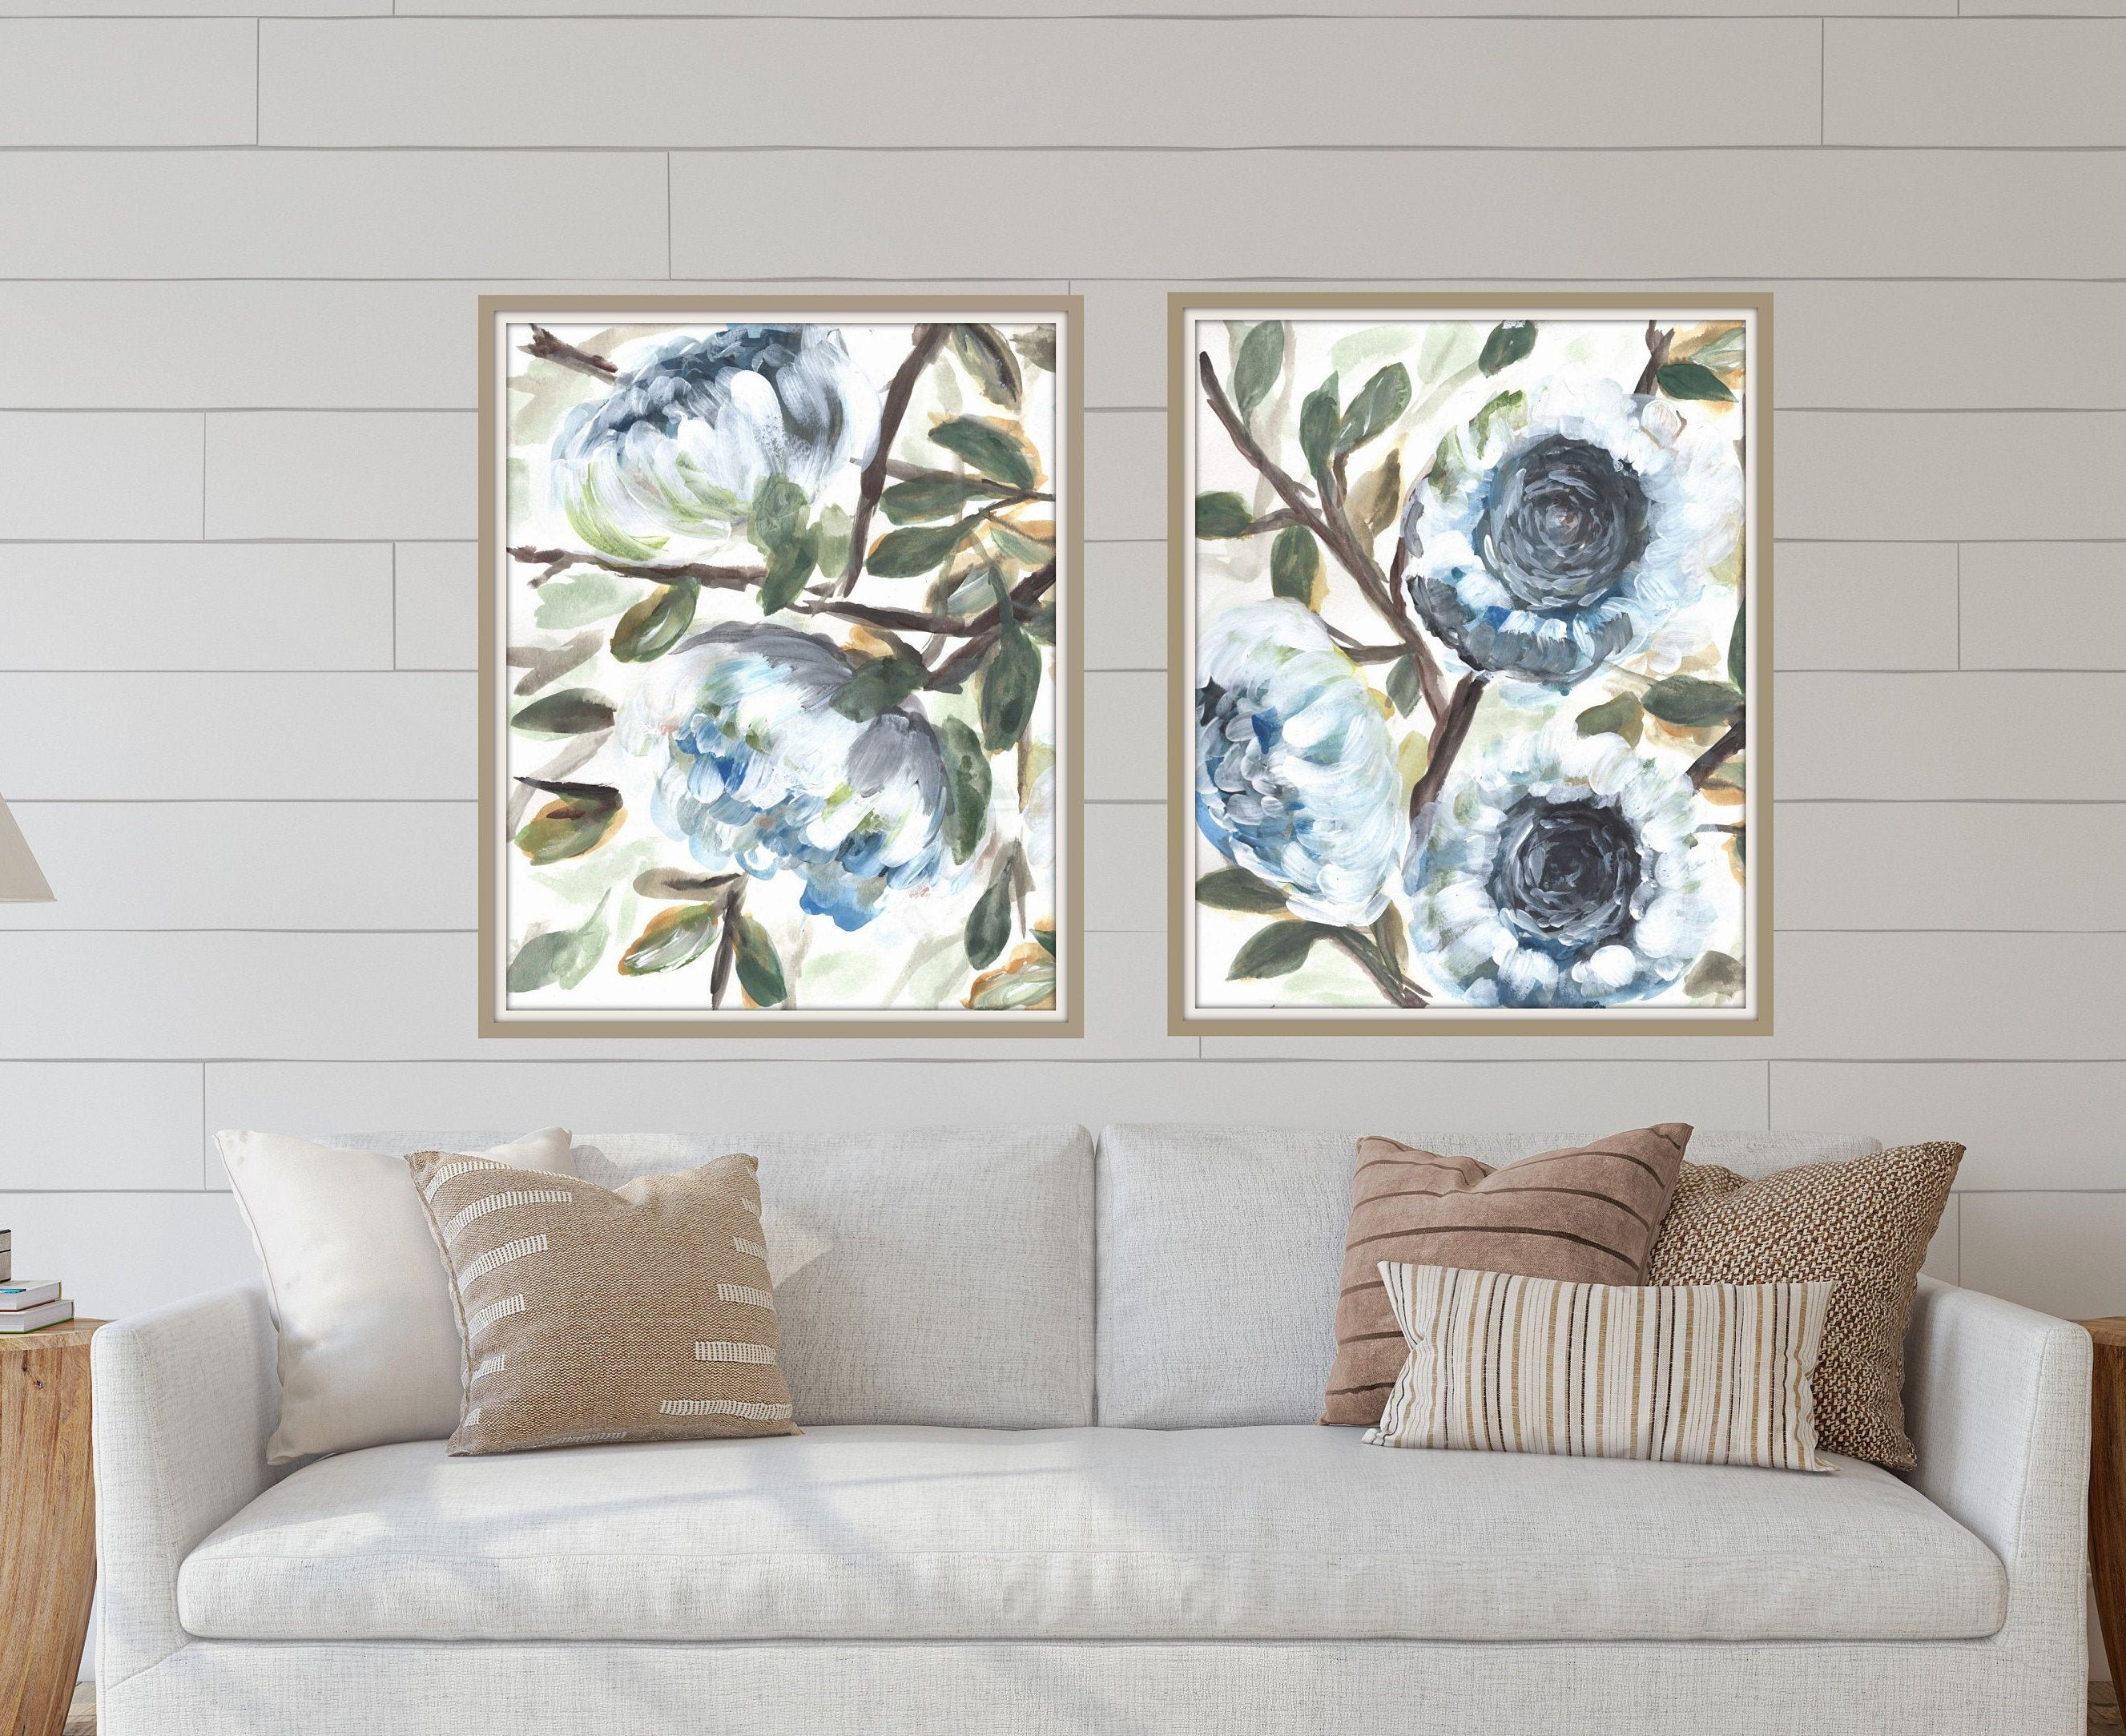 Botanical Floral Farmhouse Prints By Marcy Chapman Original Etsy In 2020 Floral Wall Art Wall Art Prints Blue Abstract Painting